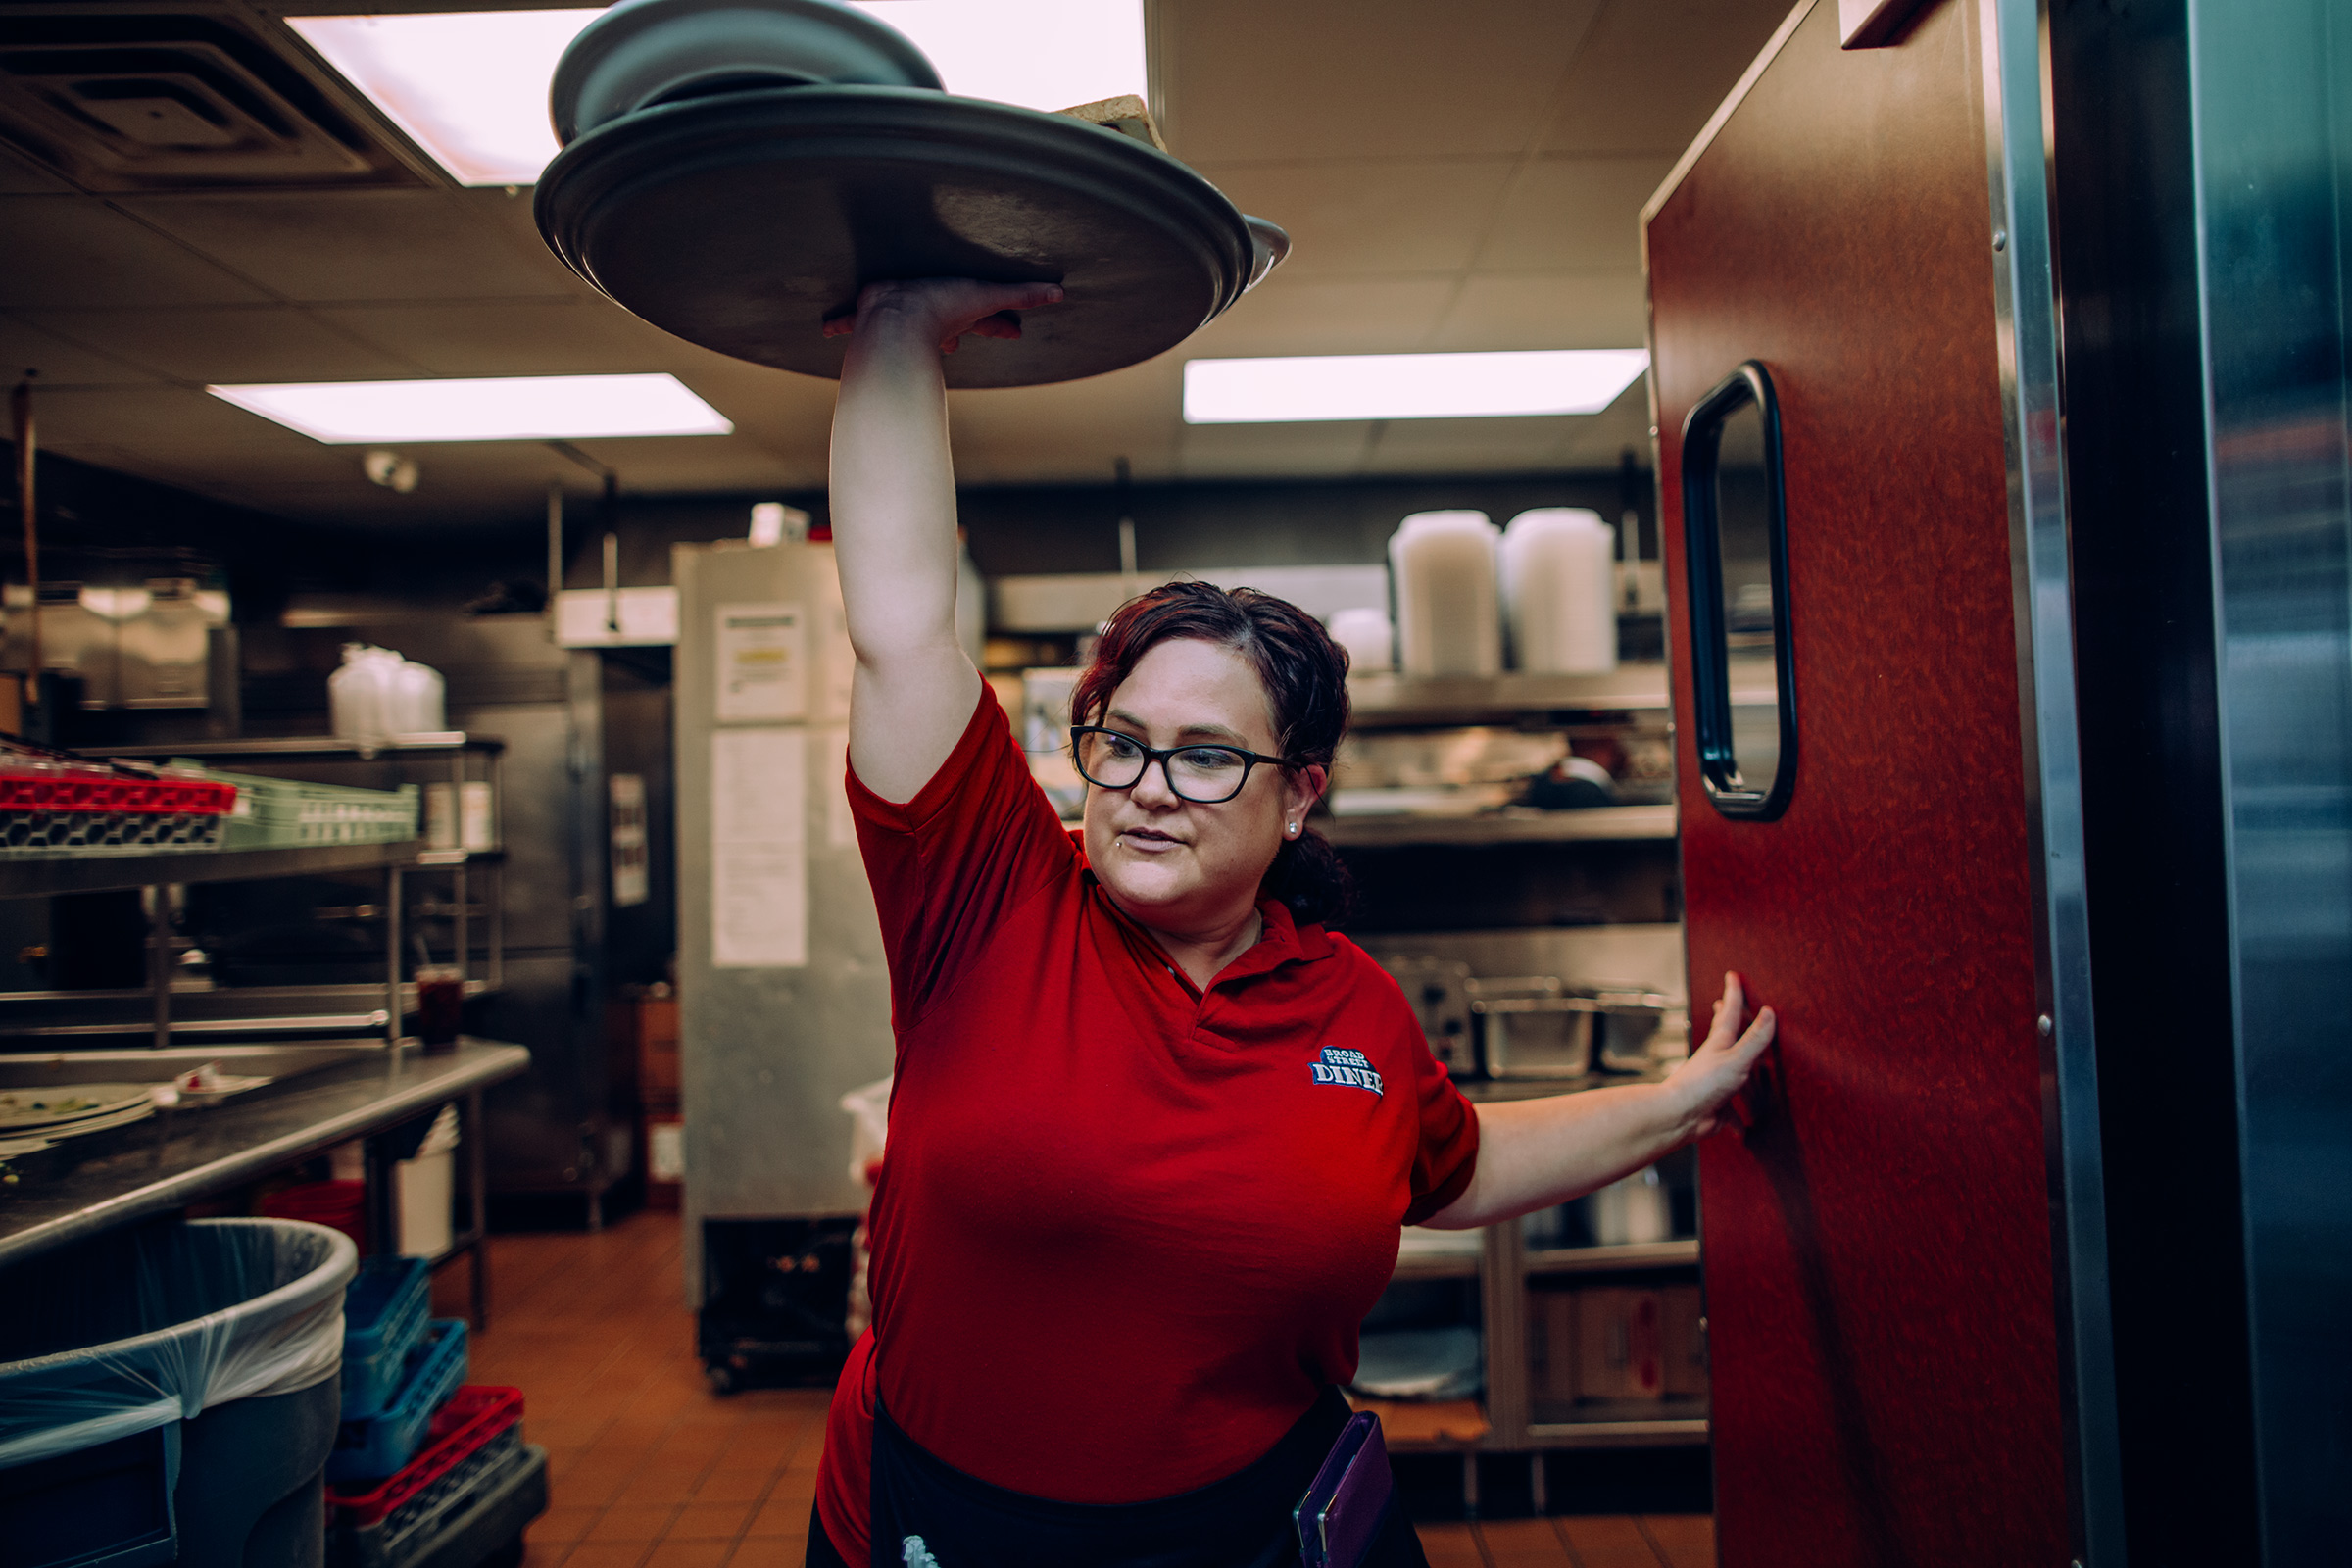 Christina Munce waits tables at Broad Street Diner in Philadelphia, where she's worked for more than eight years.